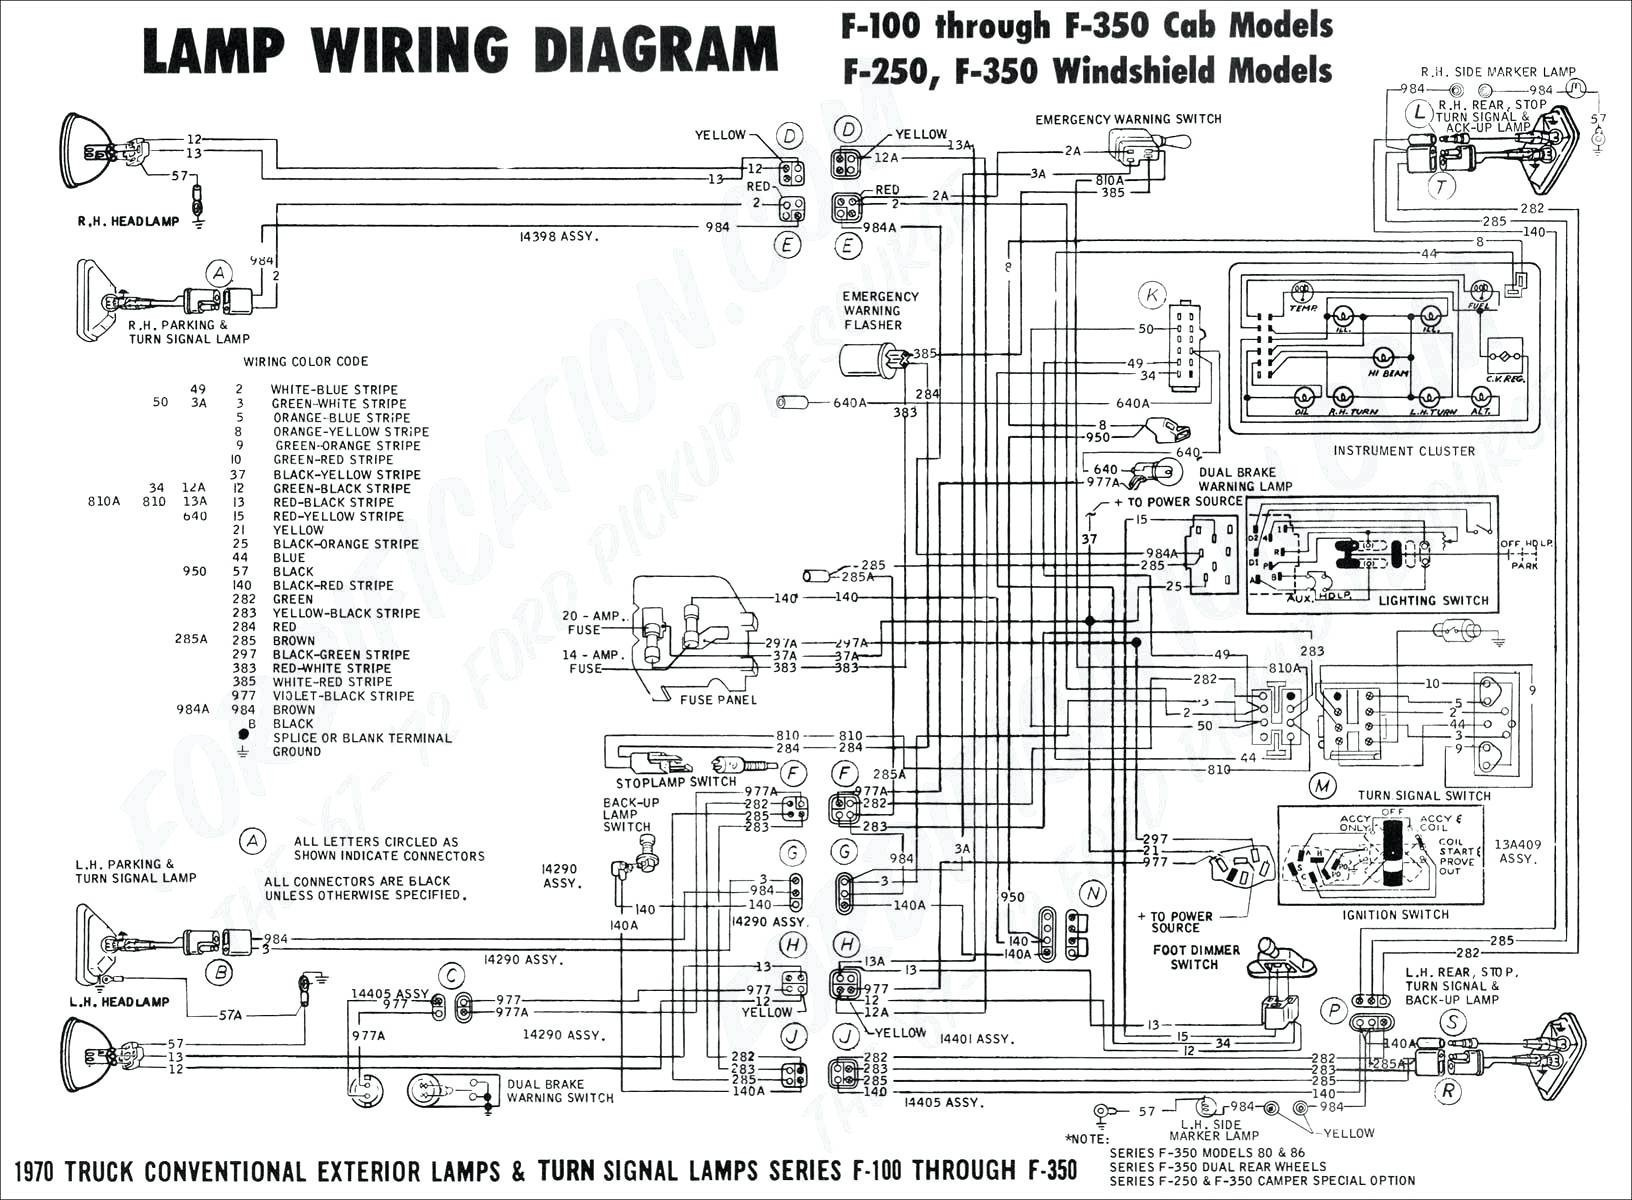 1998 toyota Corolla Engine Diagram Fuse Box 95 toyota Corolla Wiring Diagrams Konsult Of 1998 toyota Corolla Engine Diagram